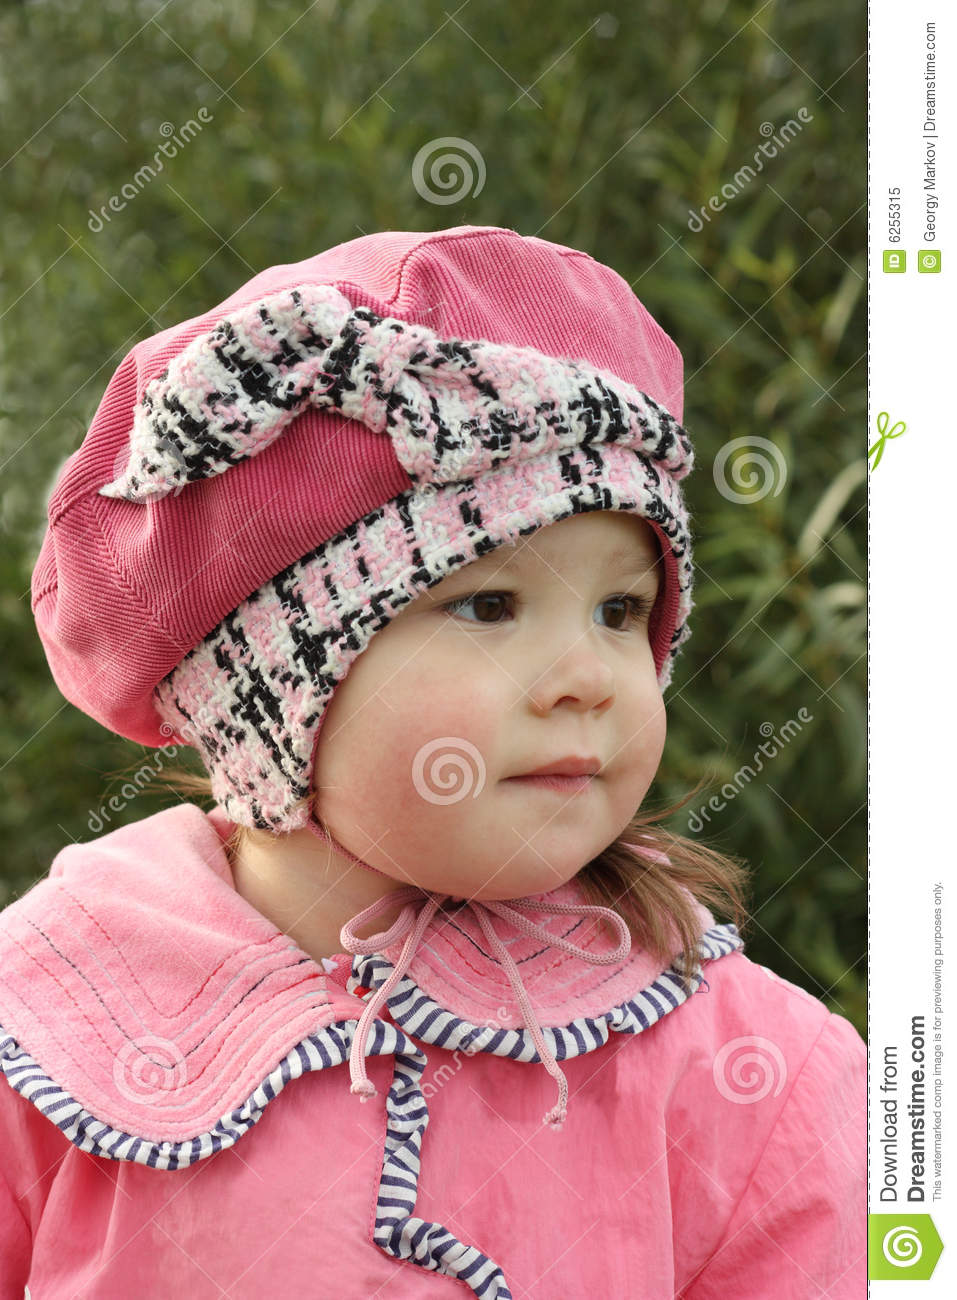 Small girl in pink